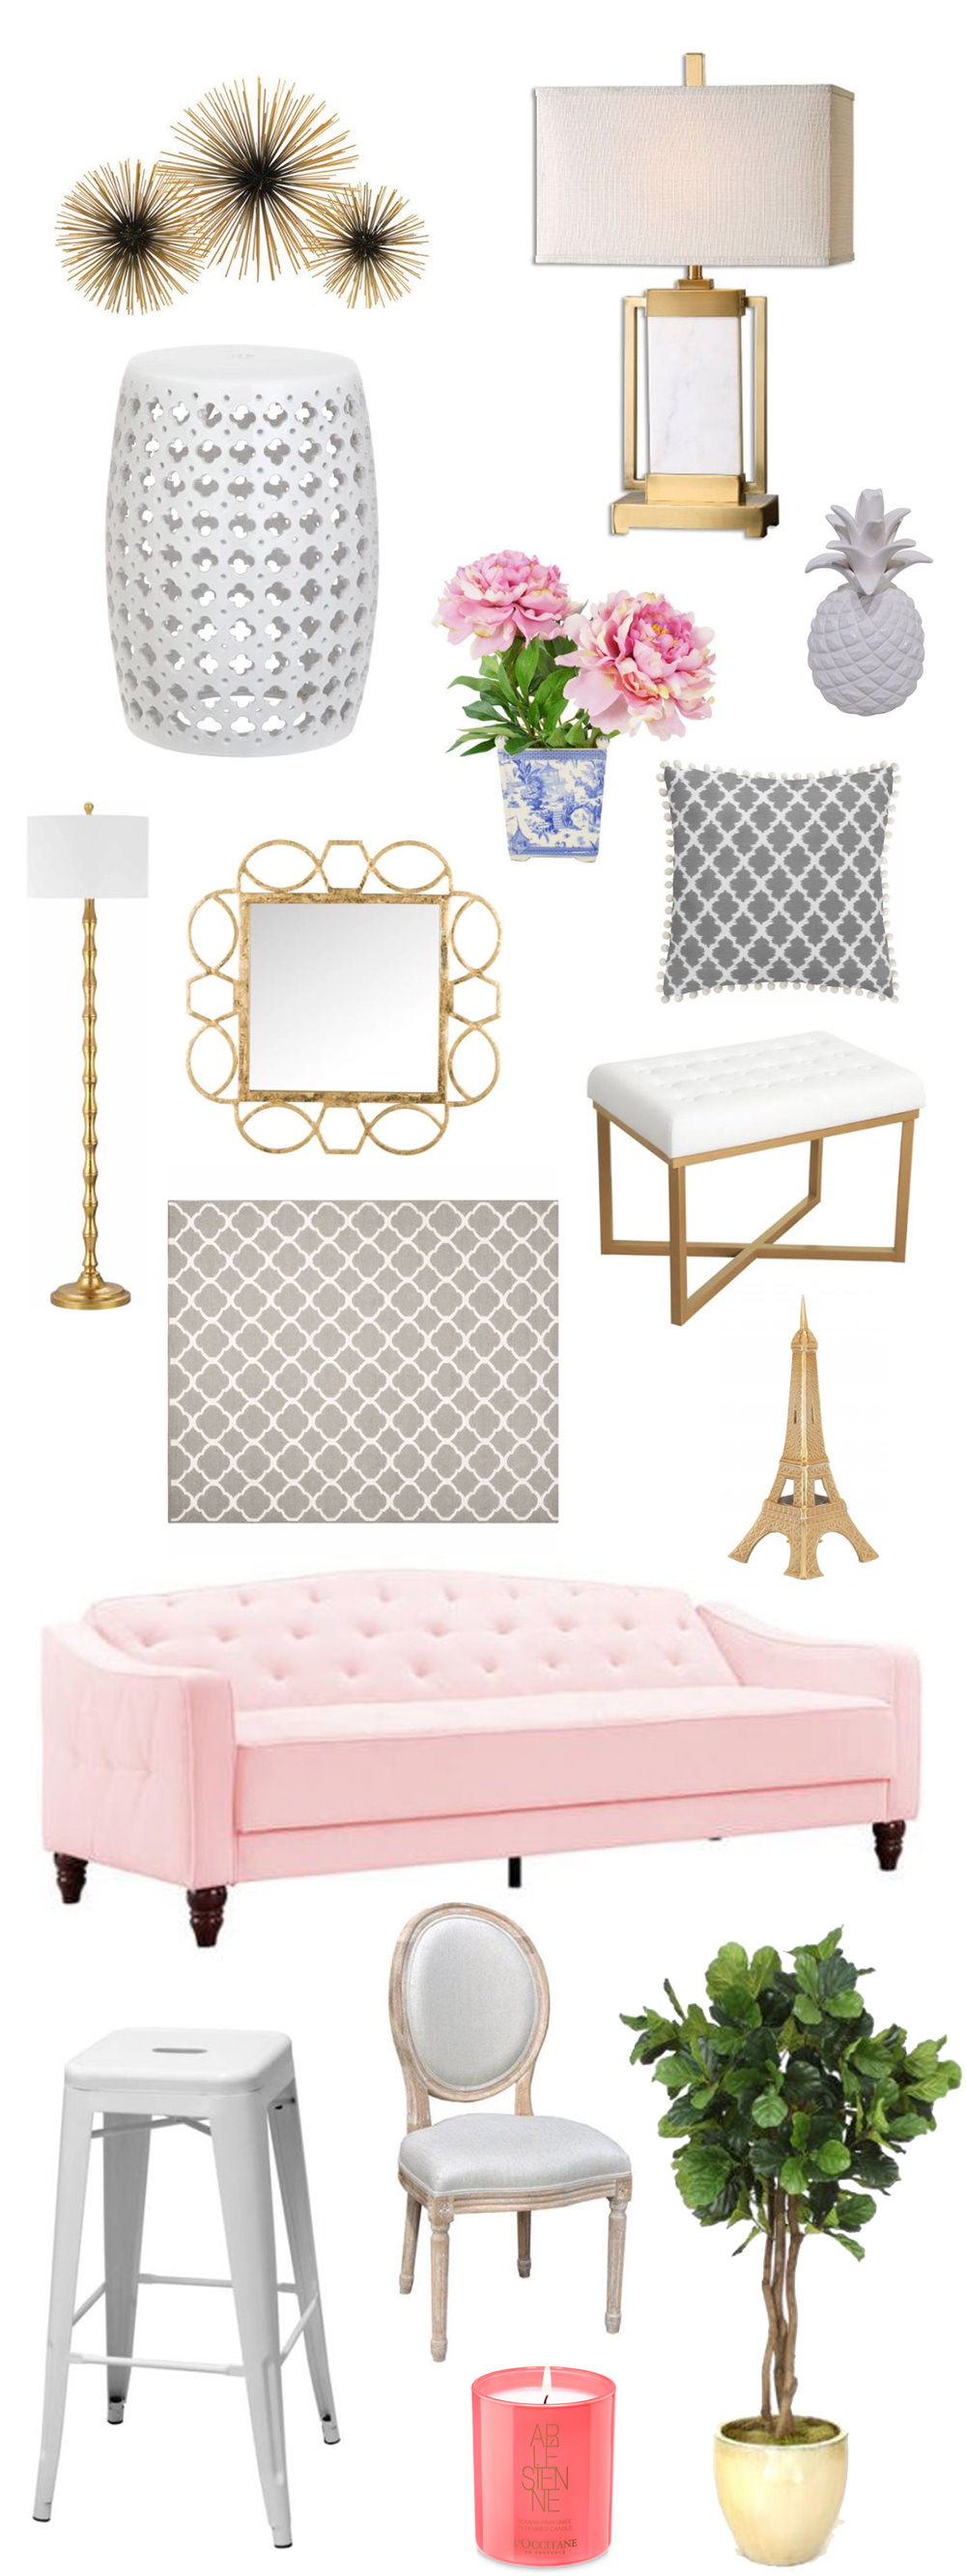 Best Tips For Updating Your Home With Affordable Decor With Walmart This Month